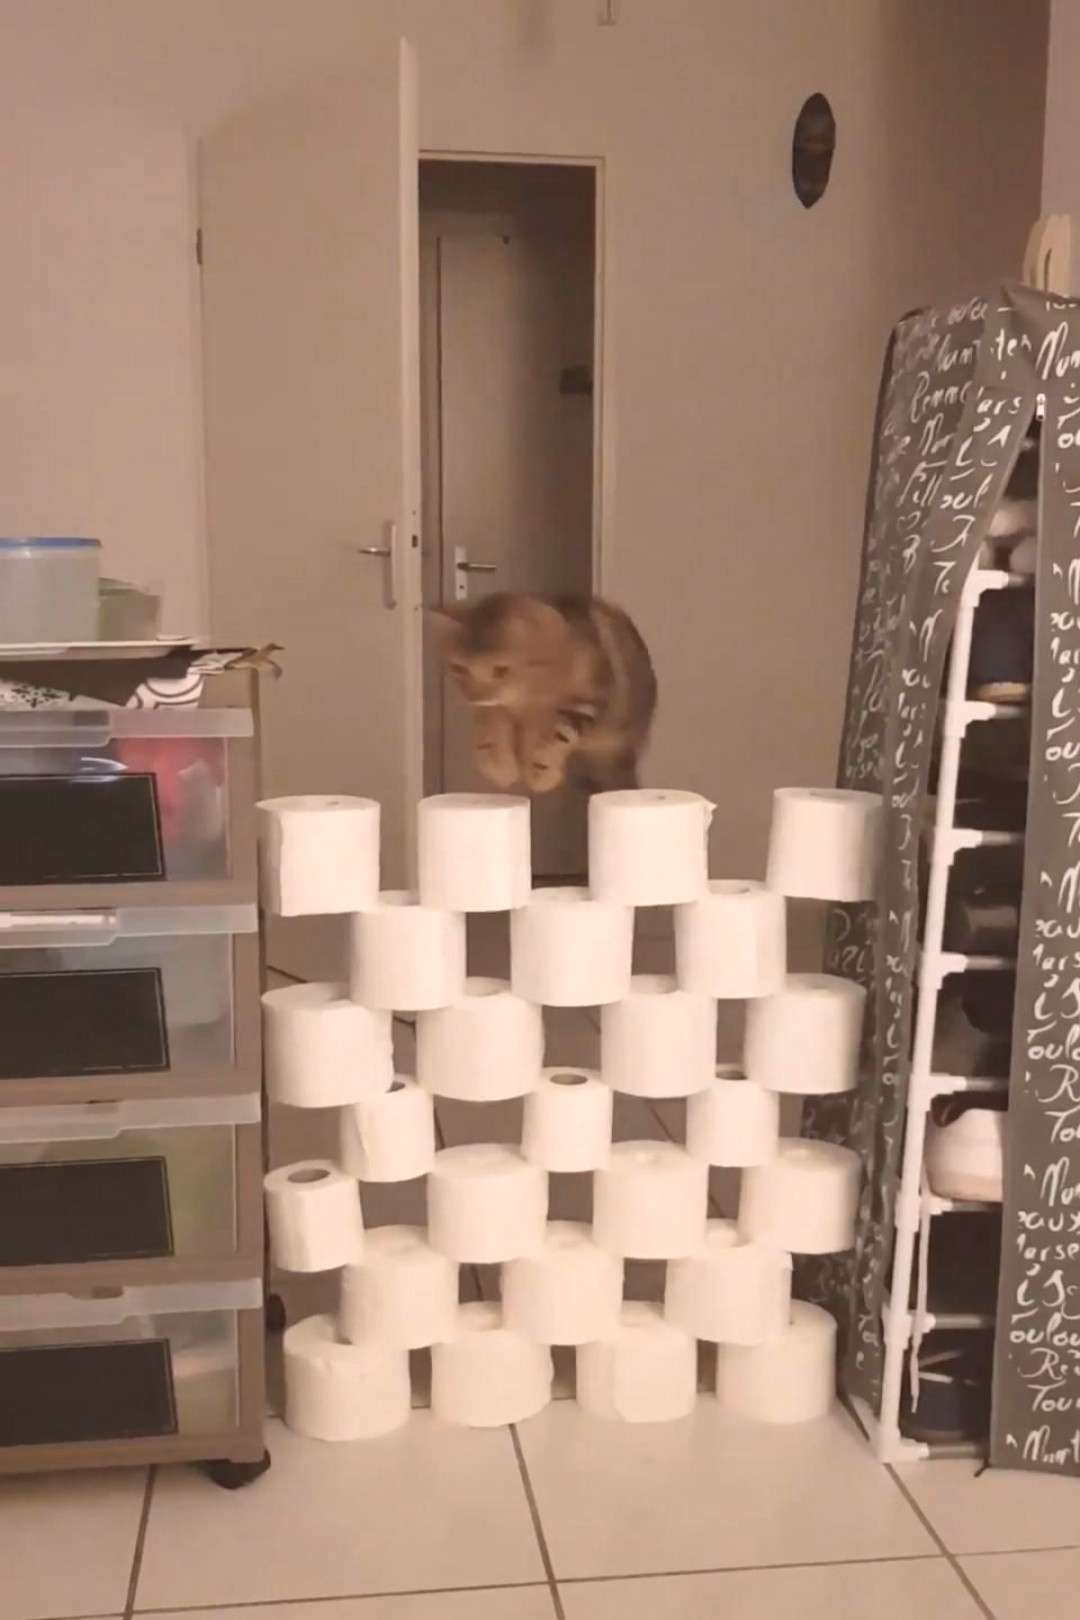 This explains all the toilet paper hoarding...